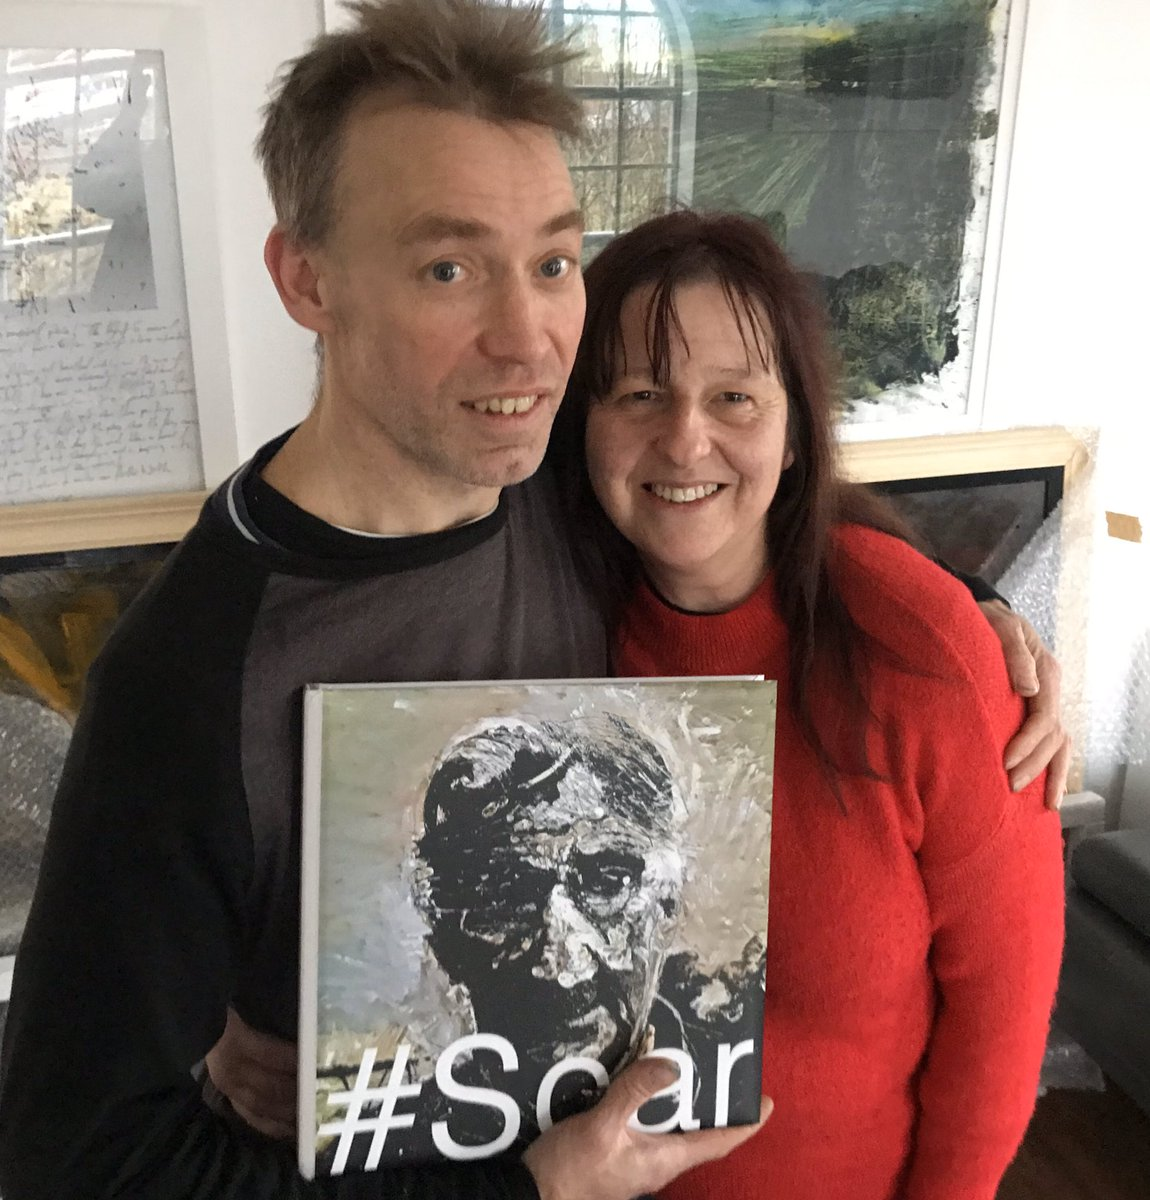 Just spent a very enjoyable afternoon with the excellent @flowerboxorguk and @MinxyOwl at the @theglosthouse collecting my copy of Ian's superb #Scar book & viewing his amazing paintings of Shetland landscapes.  Glost House cake was delish btw!